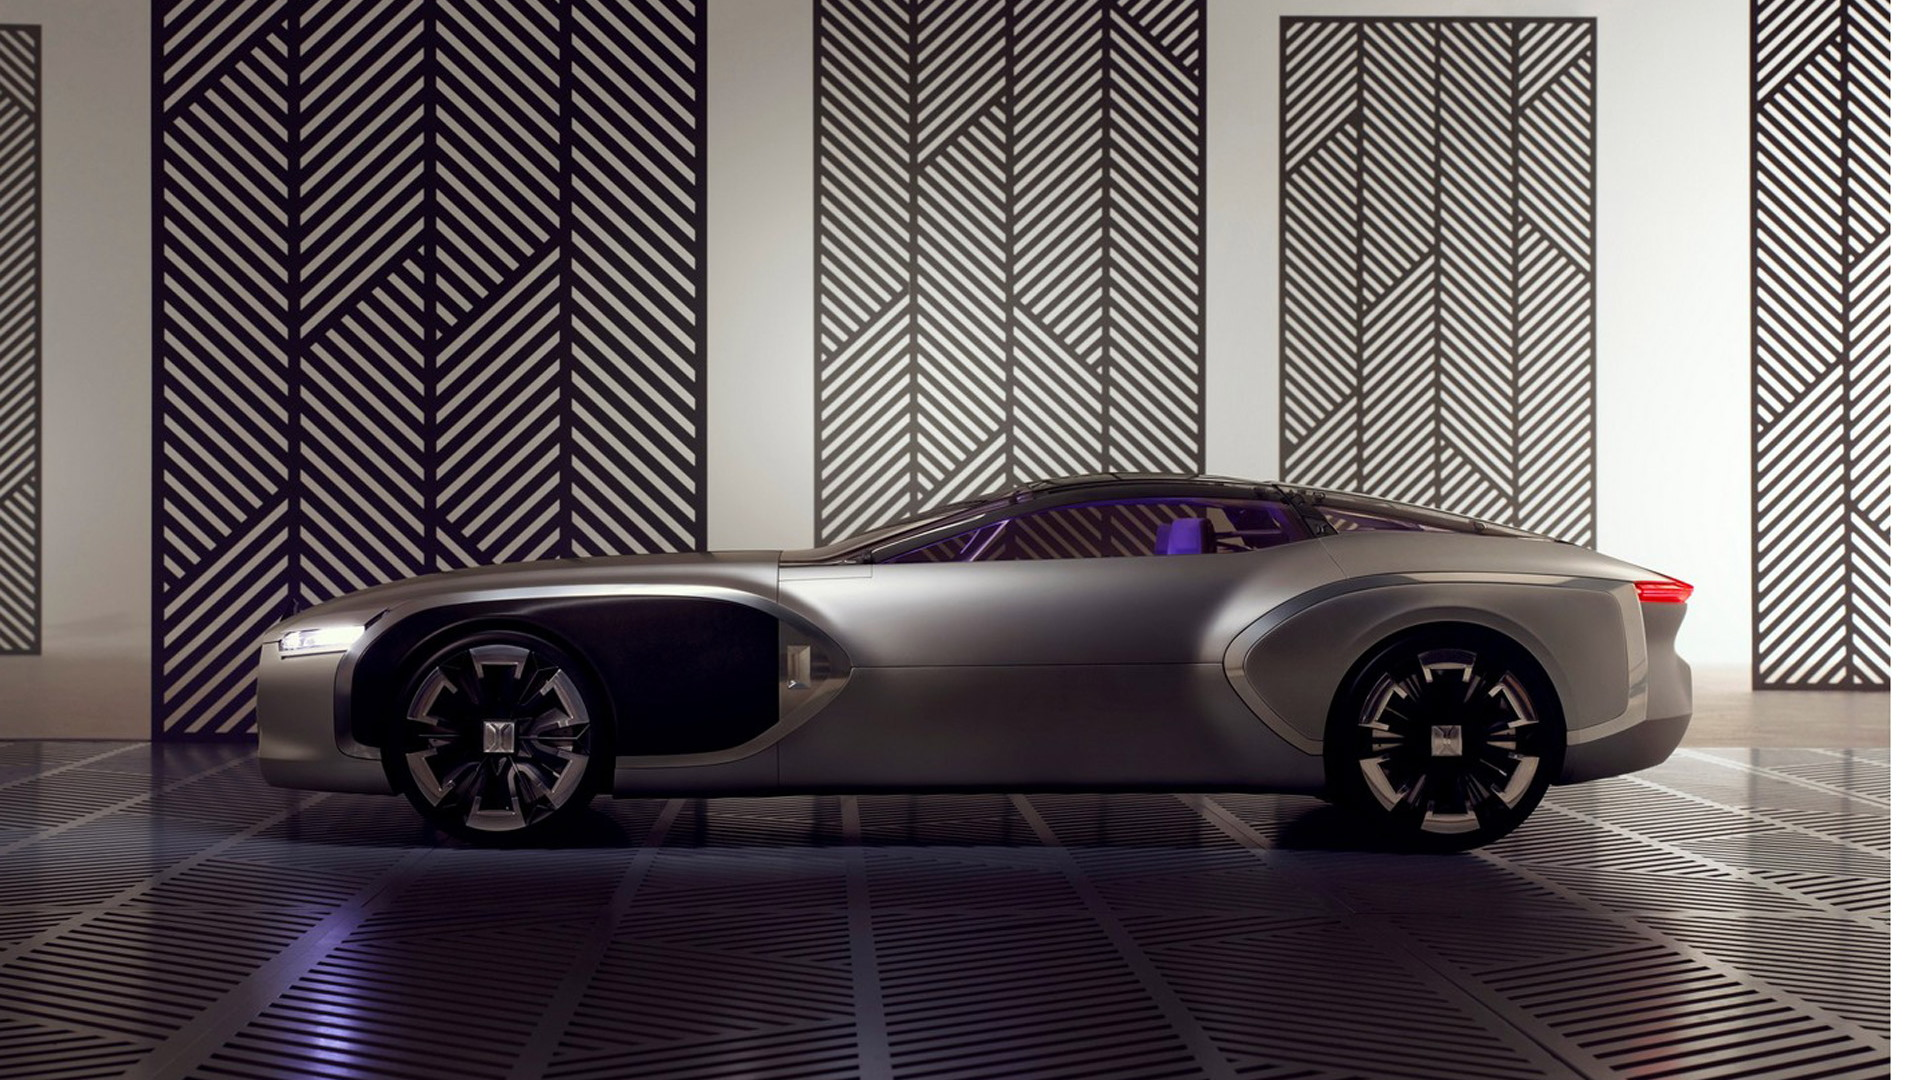 Renault concept celebrating Swiss architect Le Corbusier